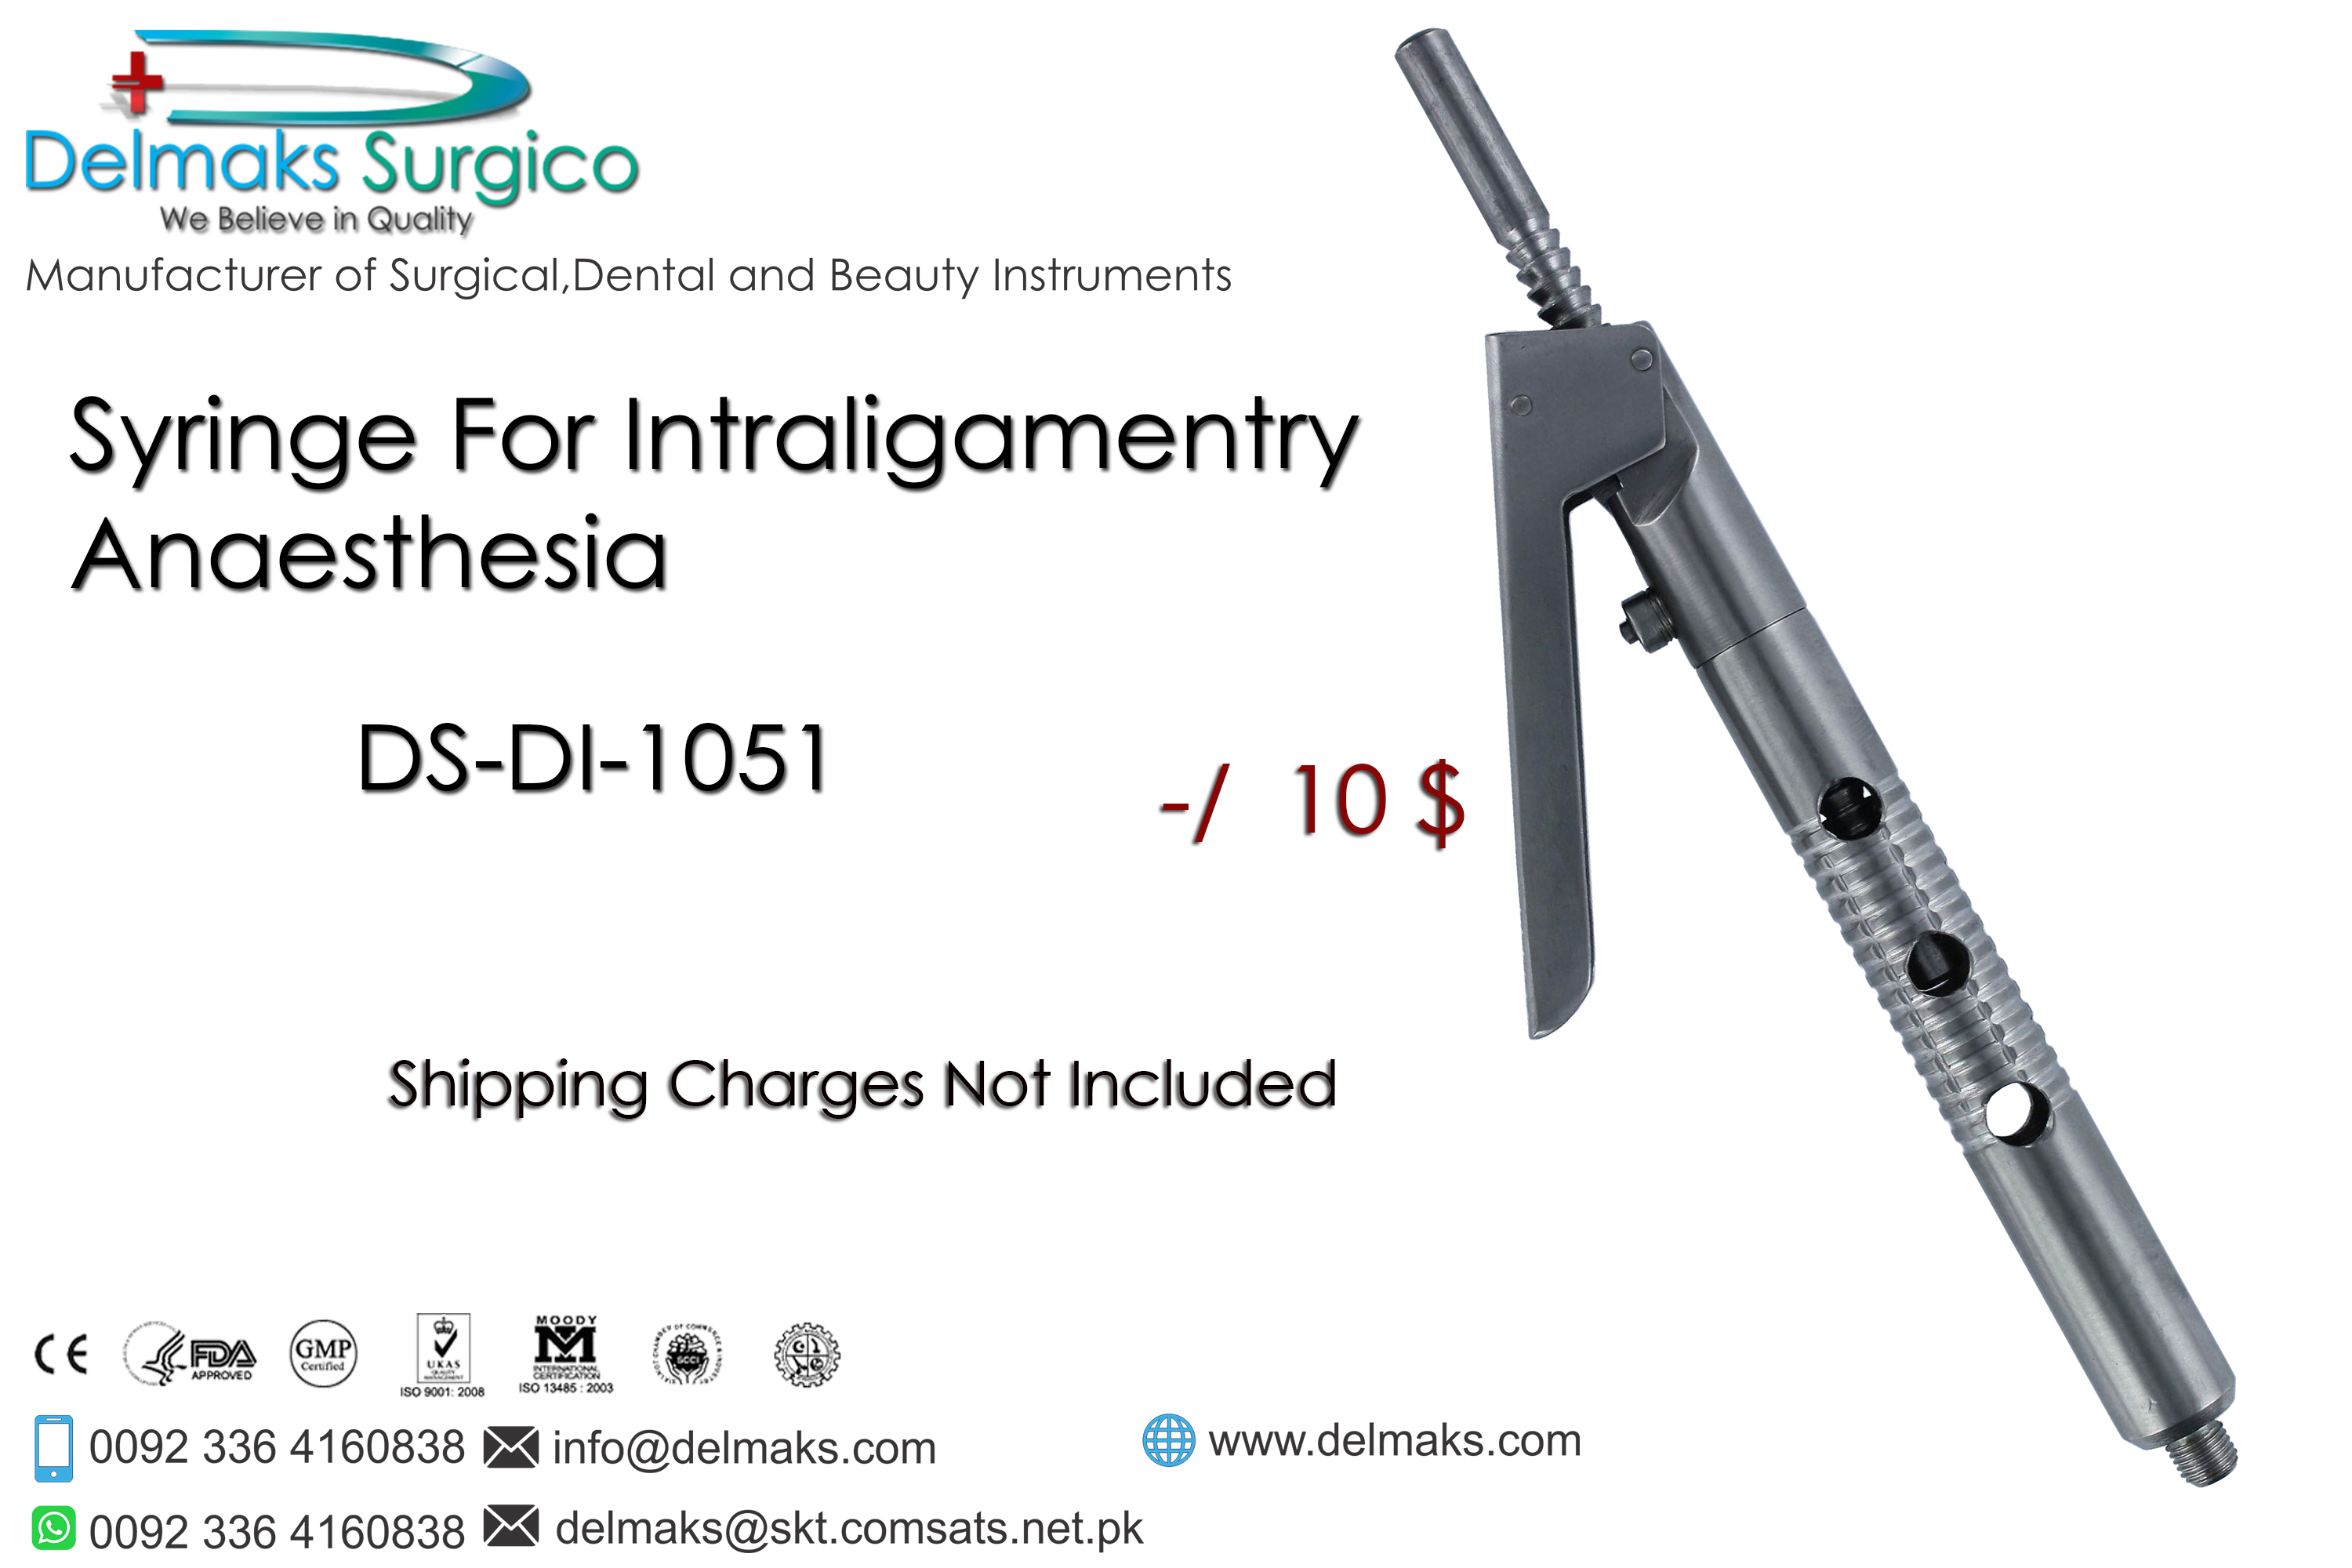 Syringe For Intraligamentry Anaestheria-Dental Syringes-Dental Instruments-Delmaks Surgico